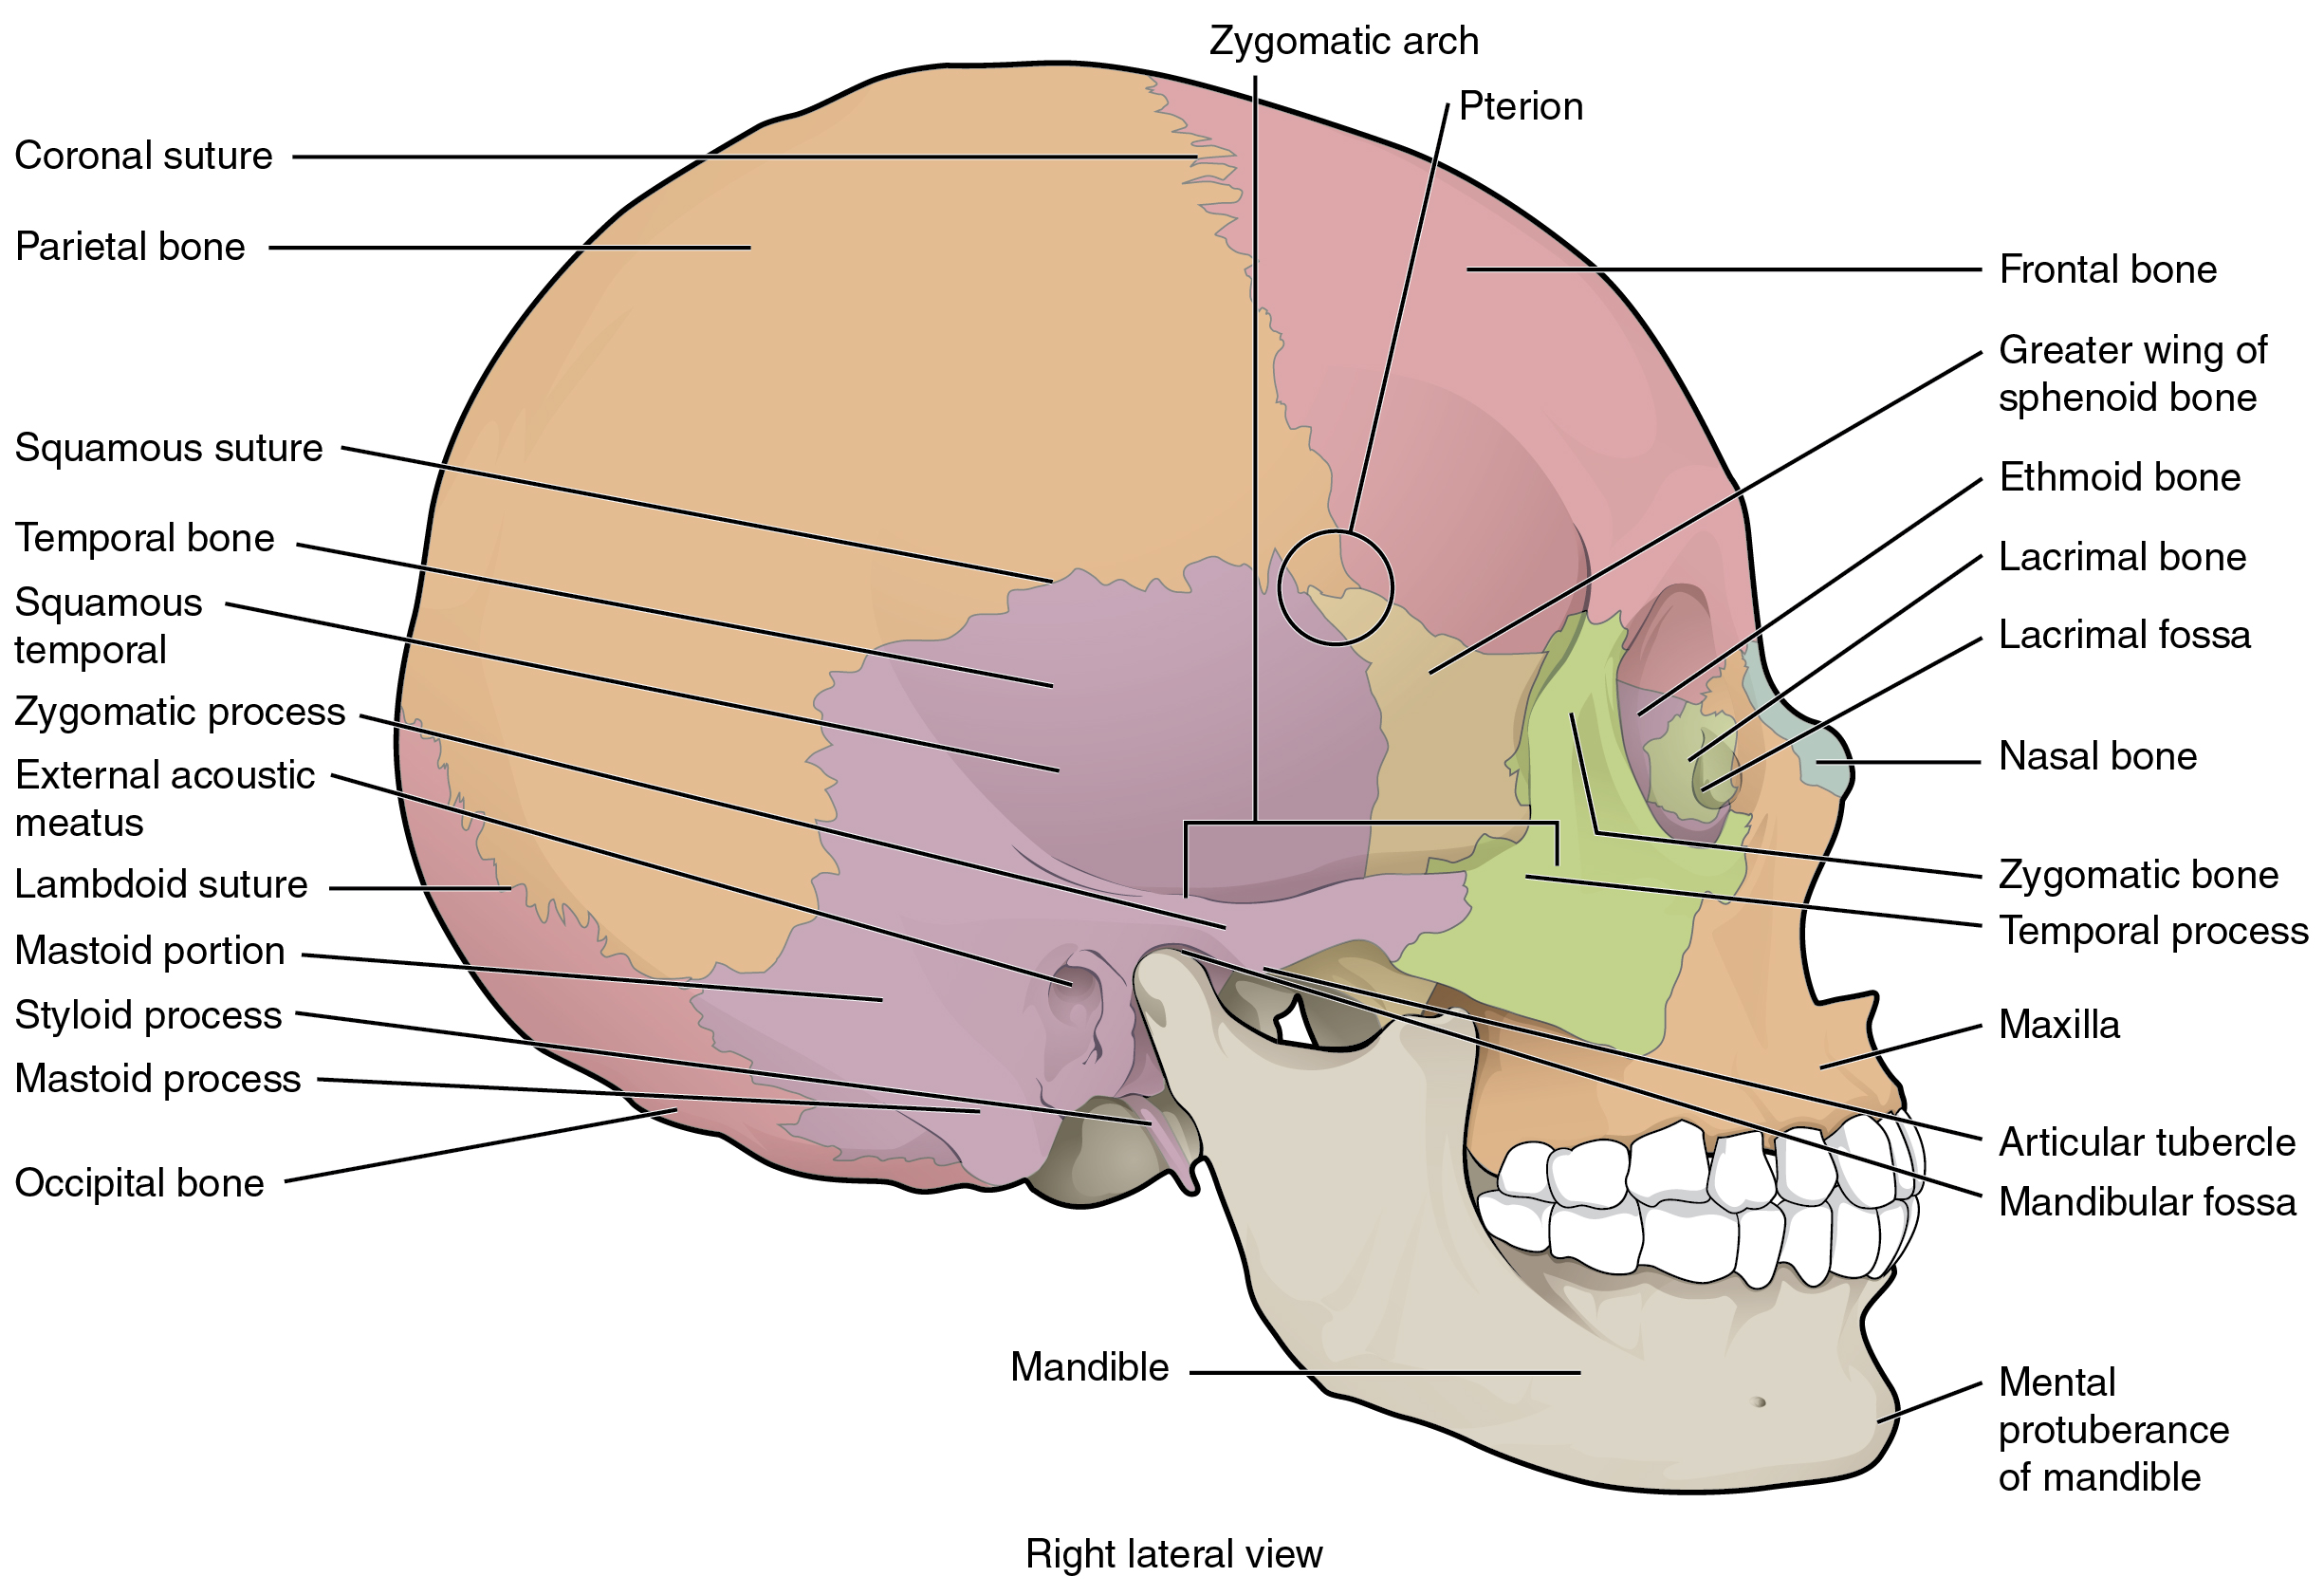 wiring diagram parallel aw1004m wiring library 7 2 the skull anatomy and physiology rh opentextbc ca skull bones diagram to label cranium